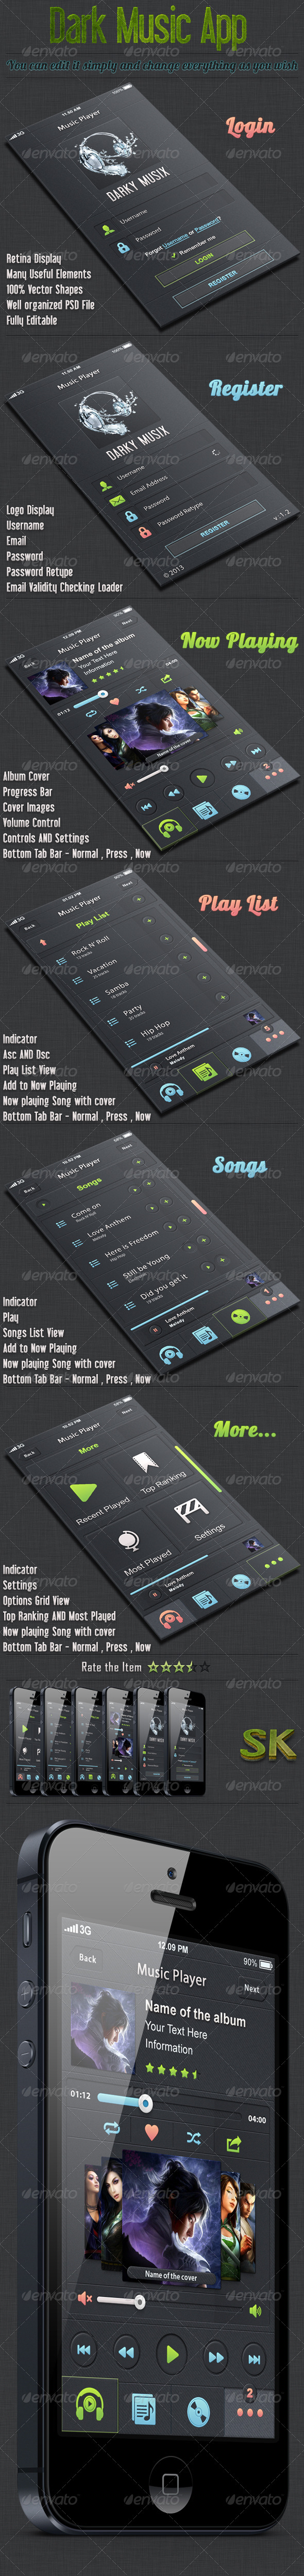 GraphicRiver Dark iOS Music App UI 5442617